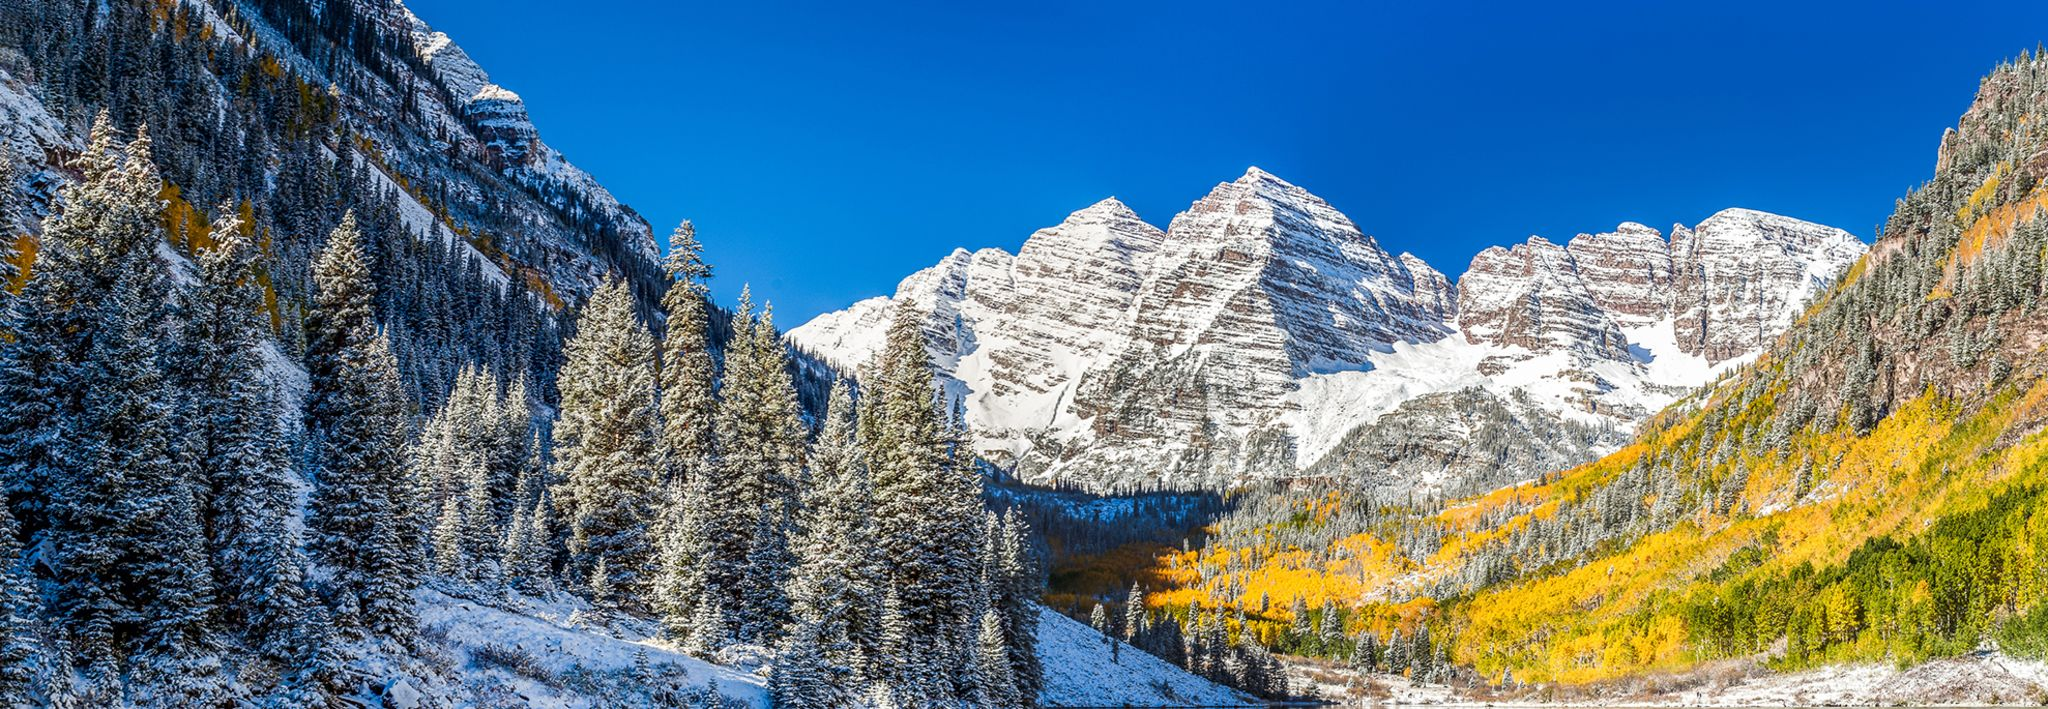 Fall and winter collide in this outstanding picture of the Maroon Bells, located in Colorado.